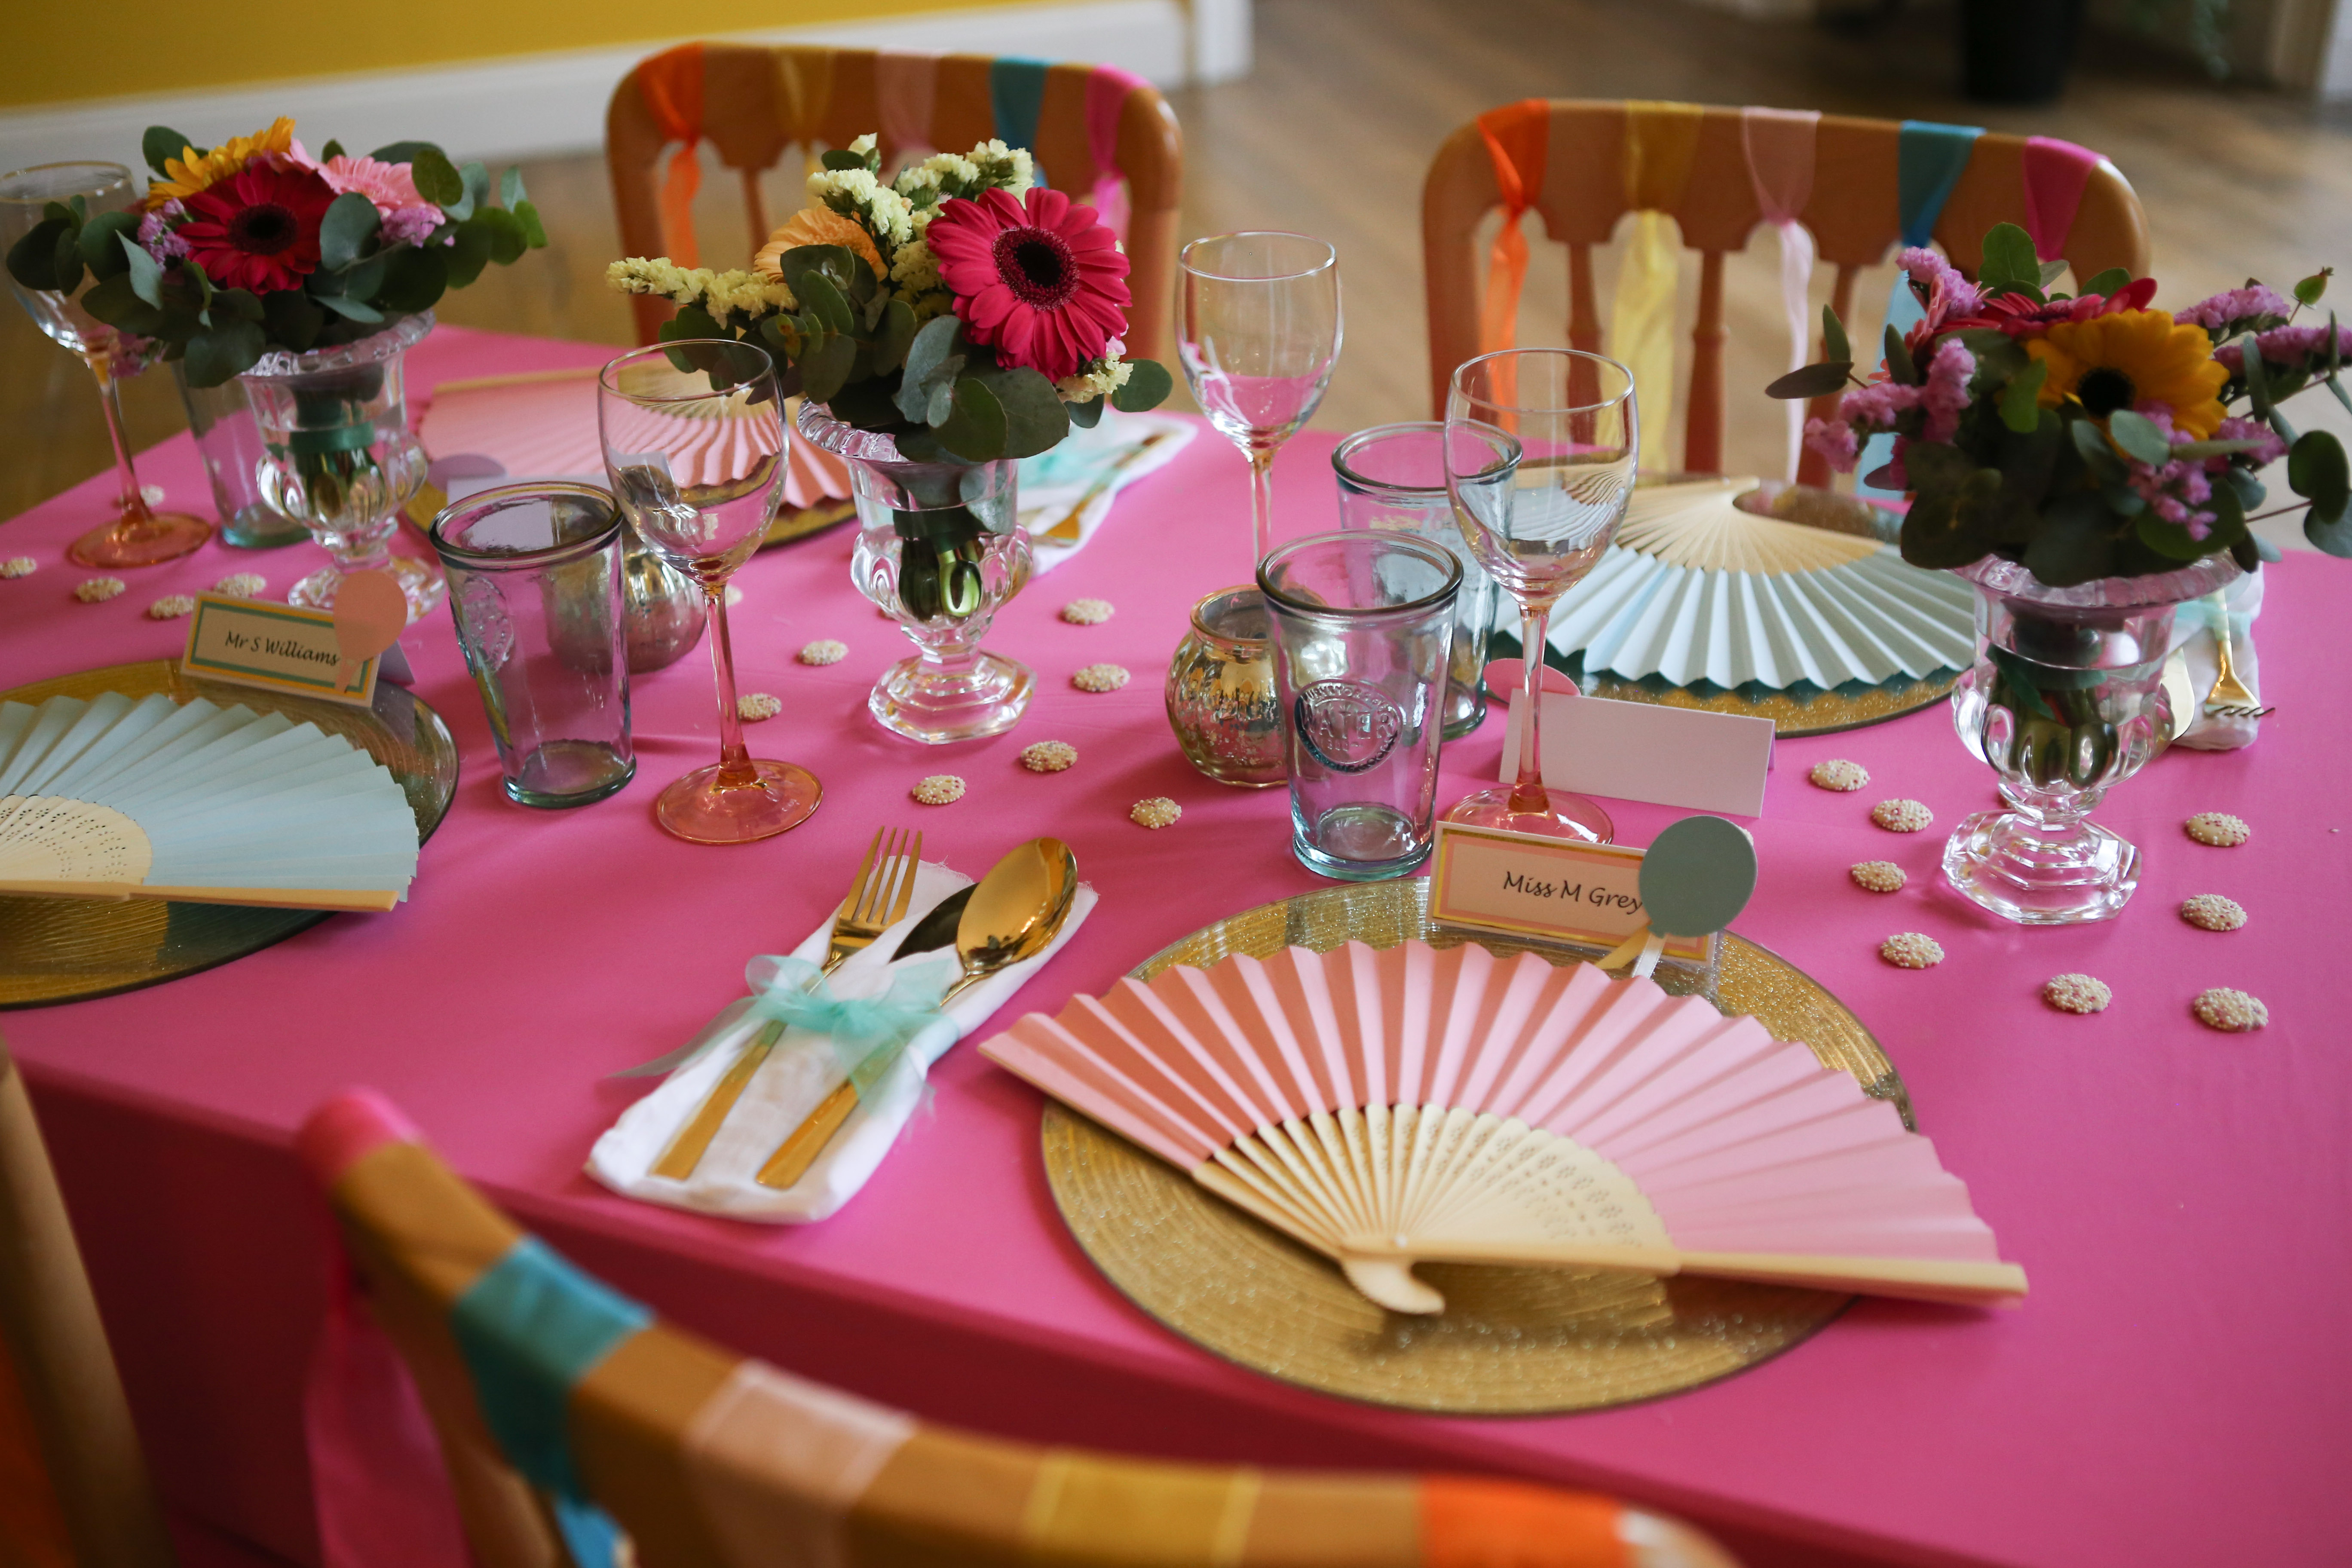 pink tablecloth with colourful fans in place settings